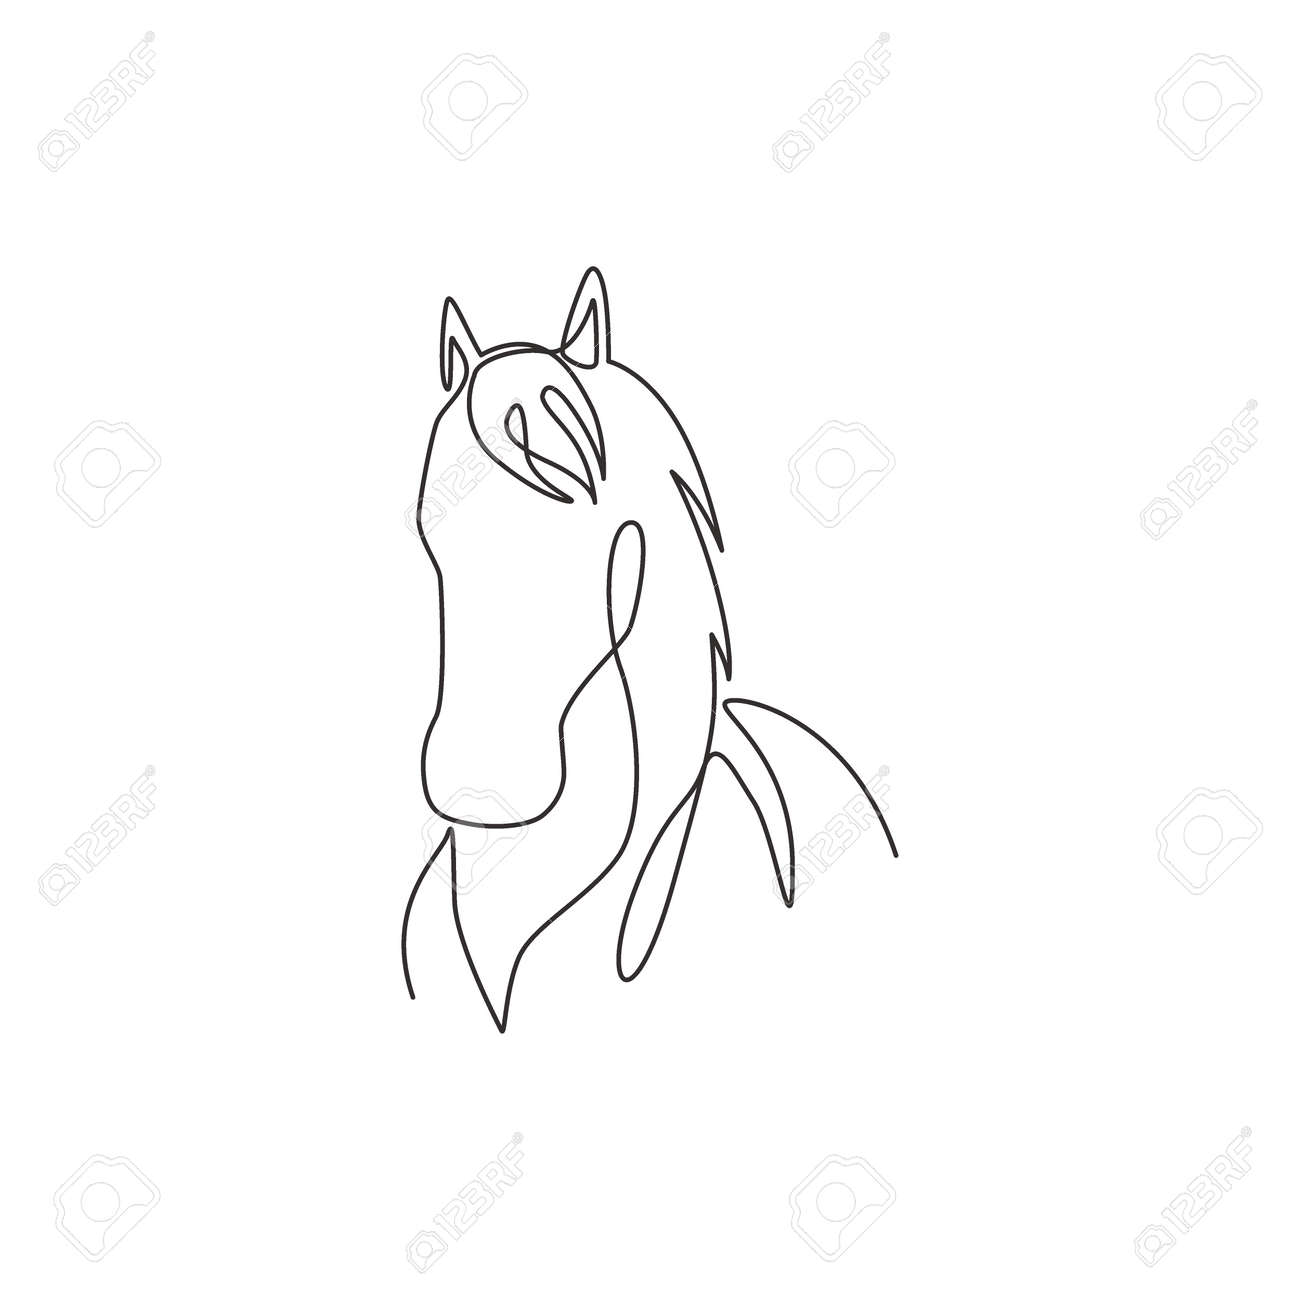 One Single Line Drawing Of Beauty Elegance Horse Head For Company Royalty Free Cliparts Vectors And Stock Illustration Image 150689496